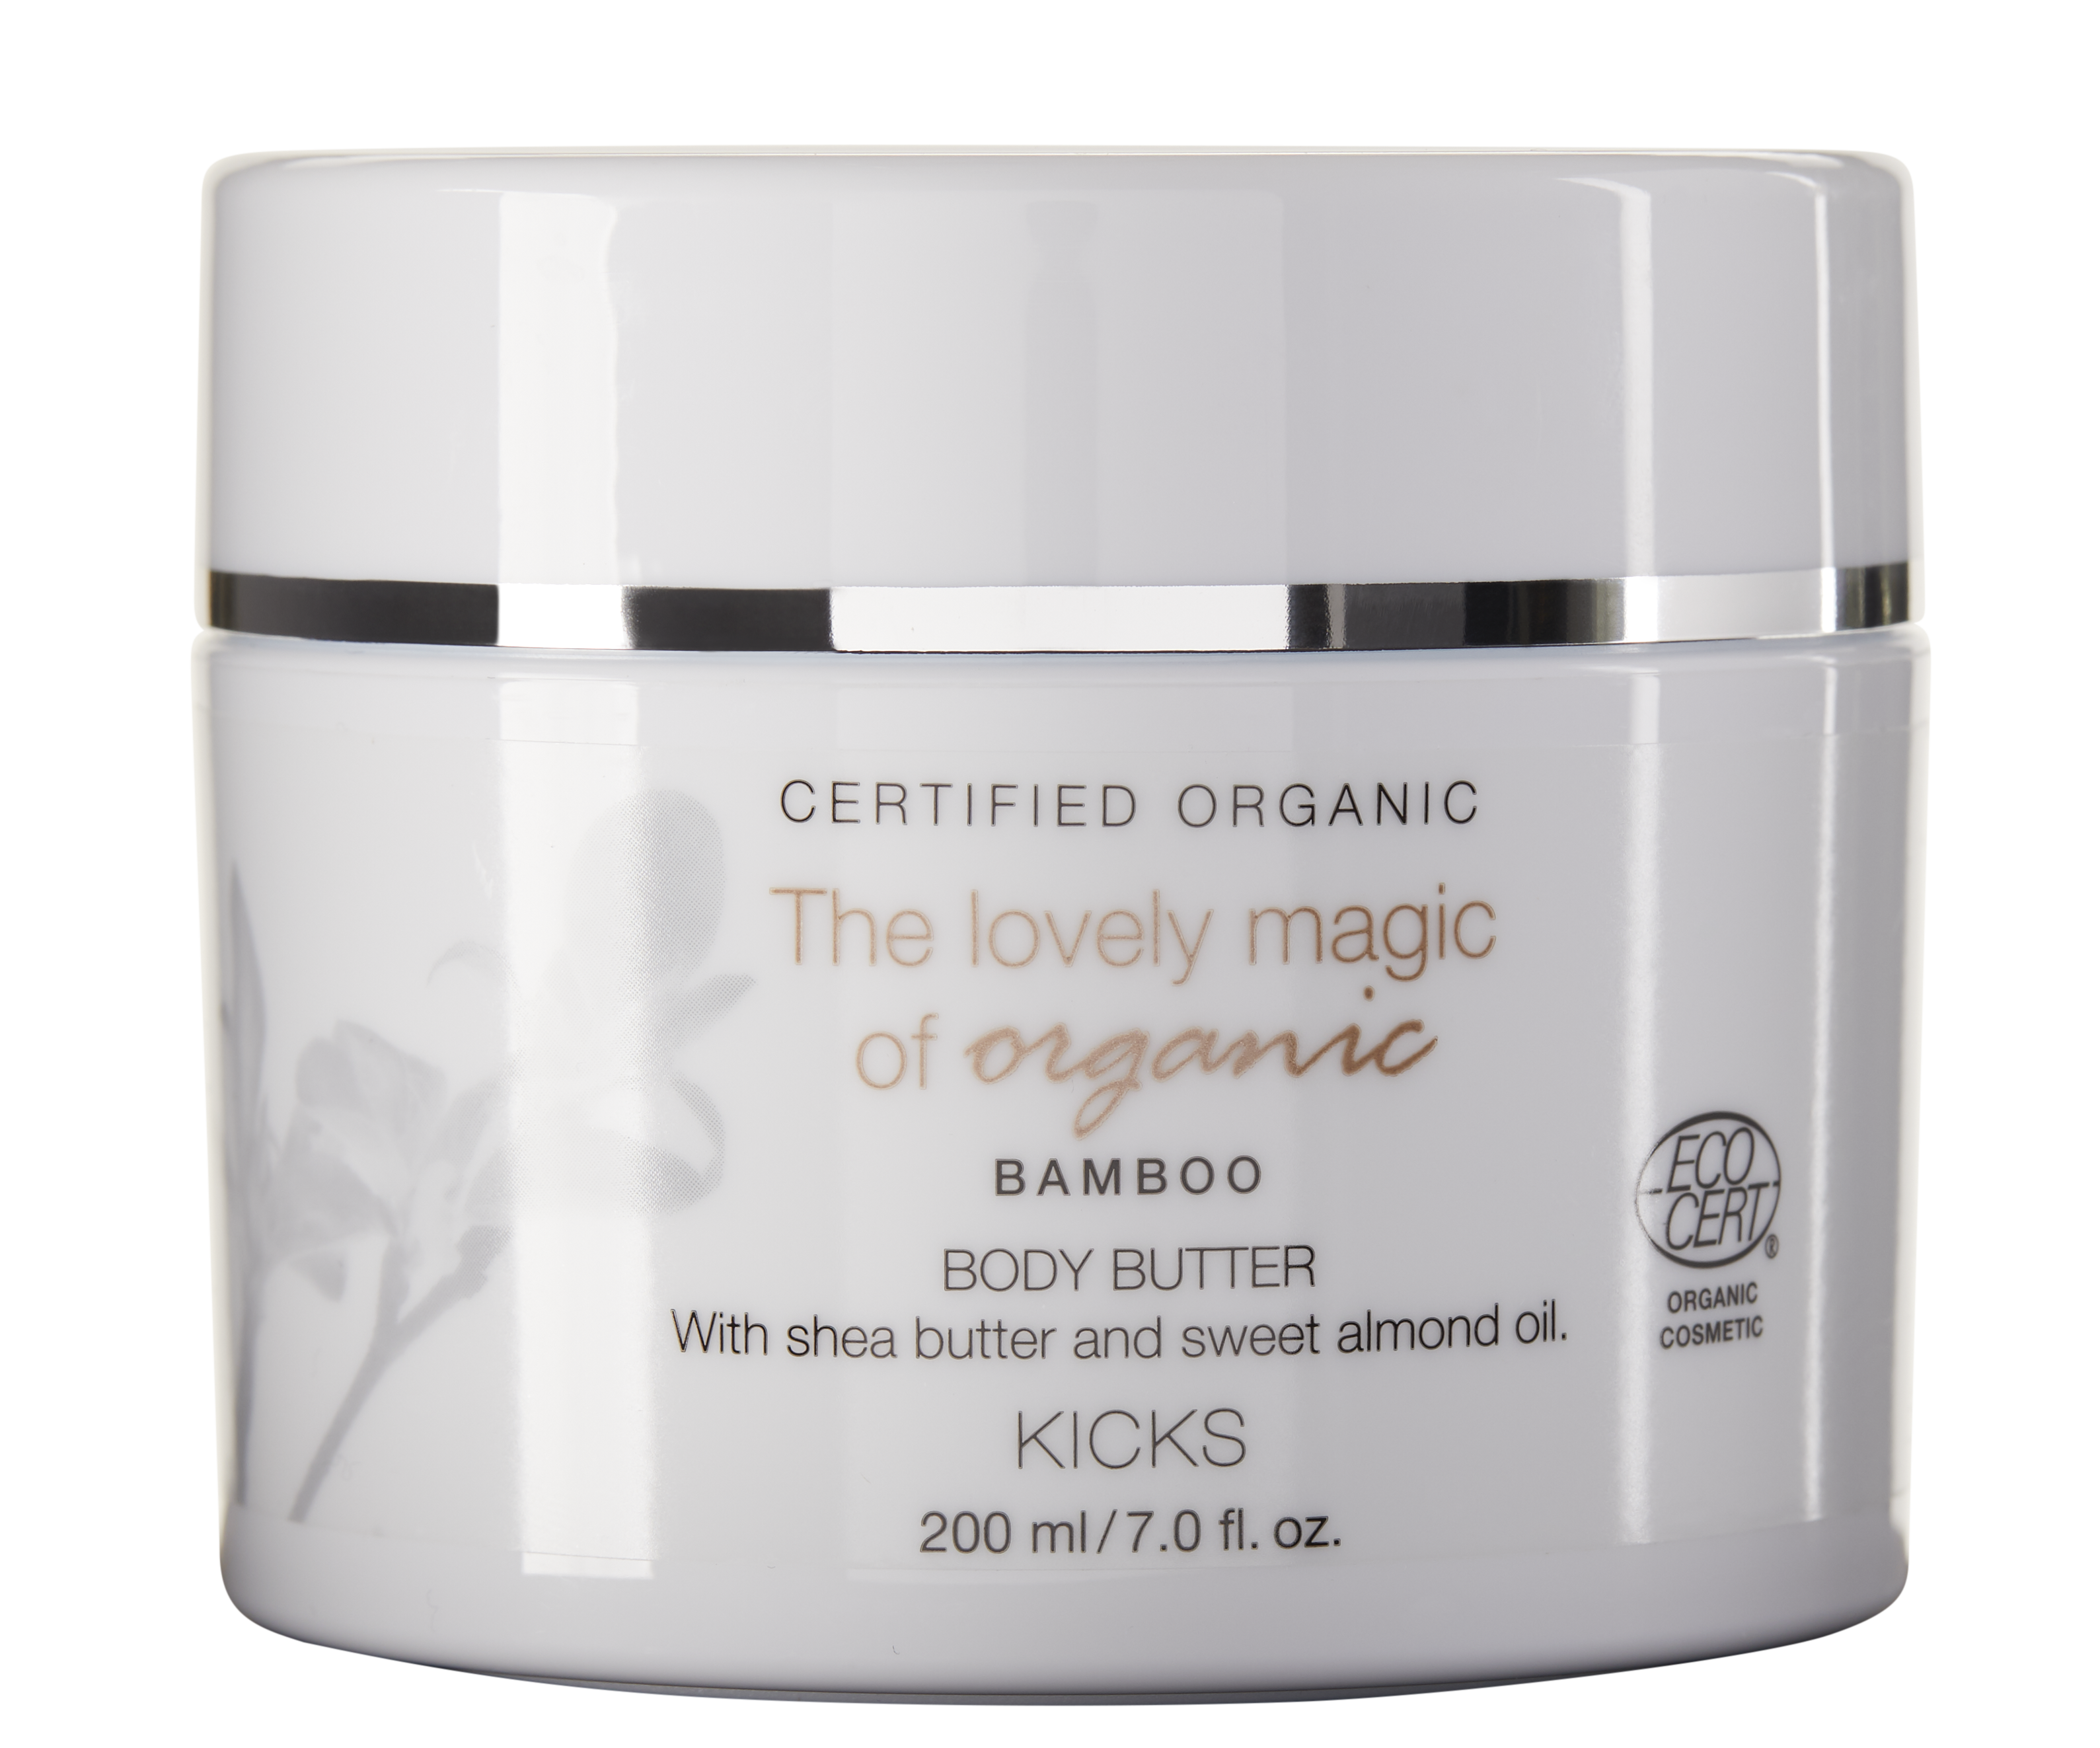 Certified Organic Bamboo Body Butter